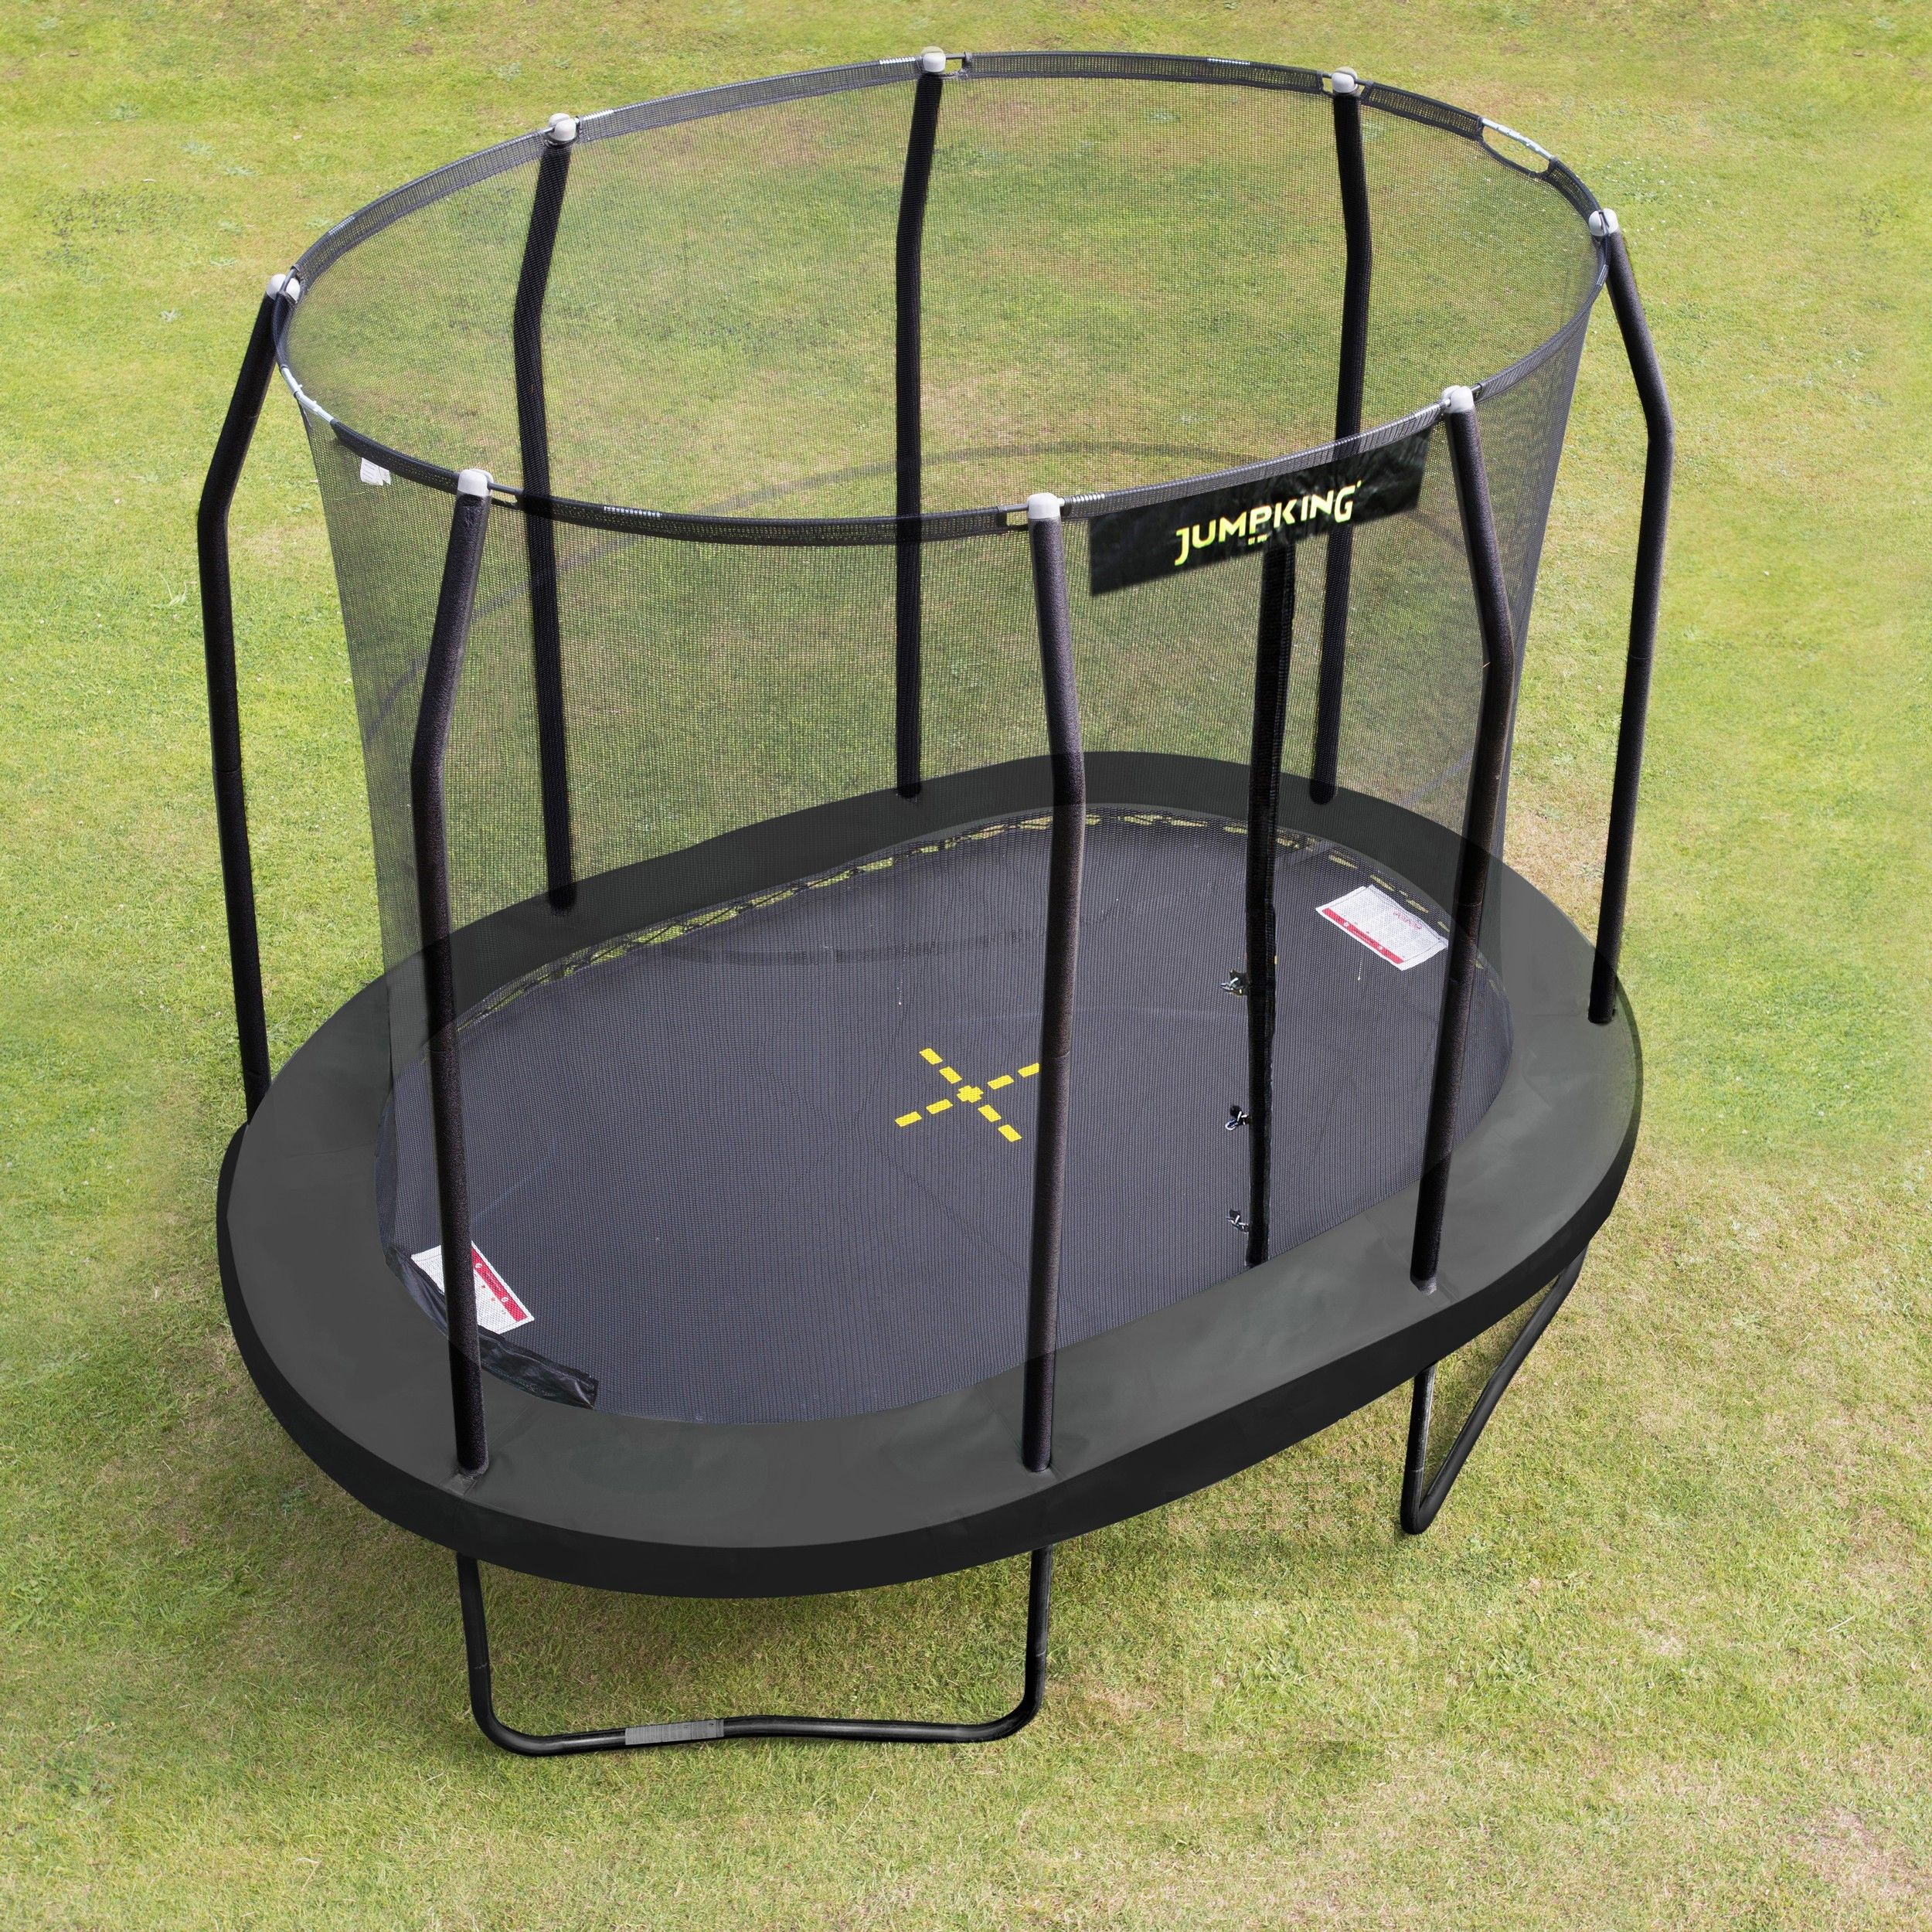 10ft X 7ft Jumpking Ovalpod Trampoline With Enclosure Jpo710g17